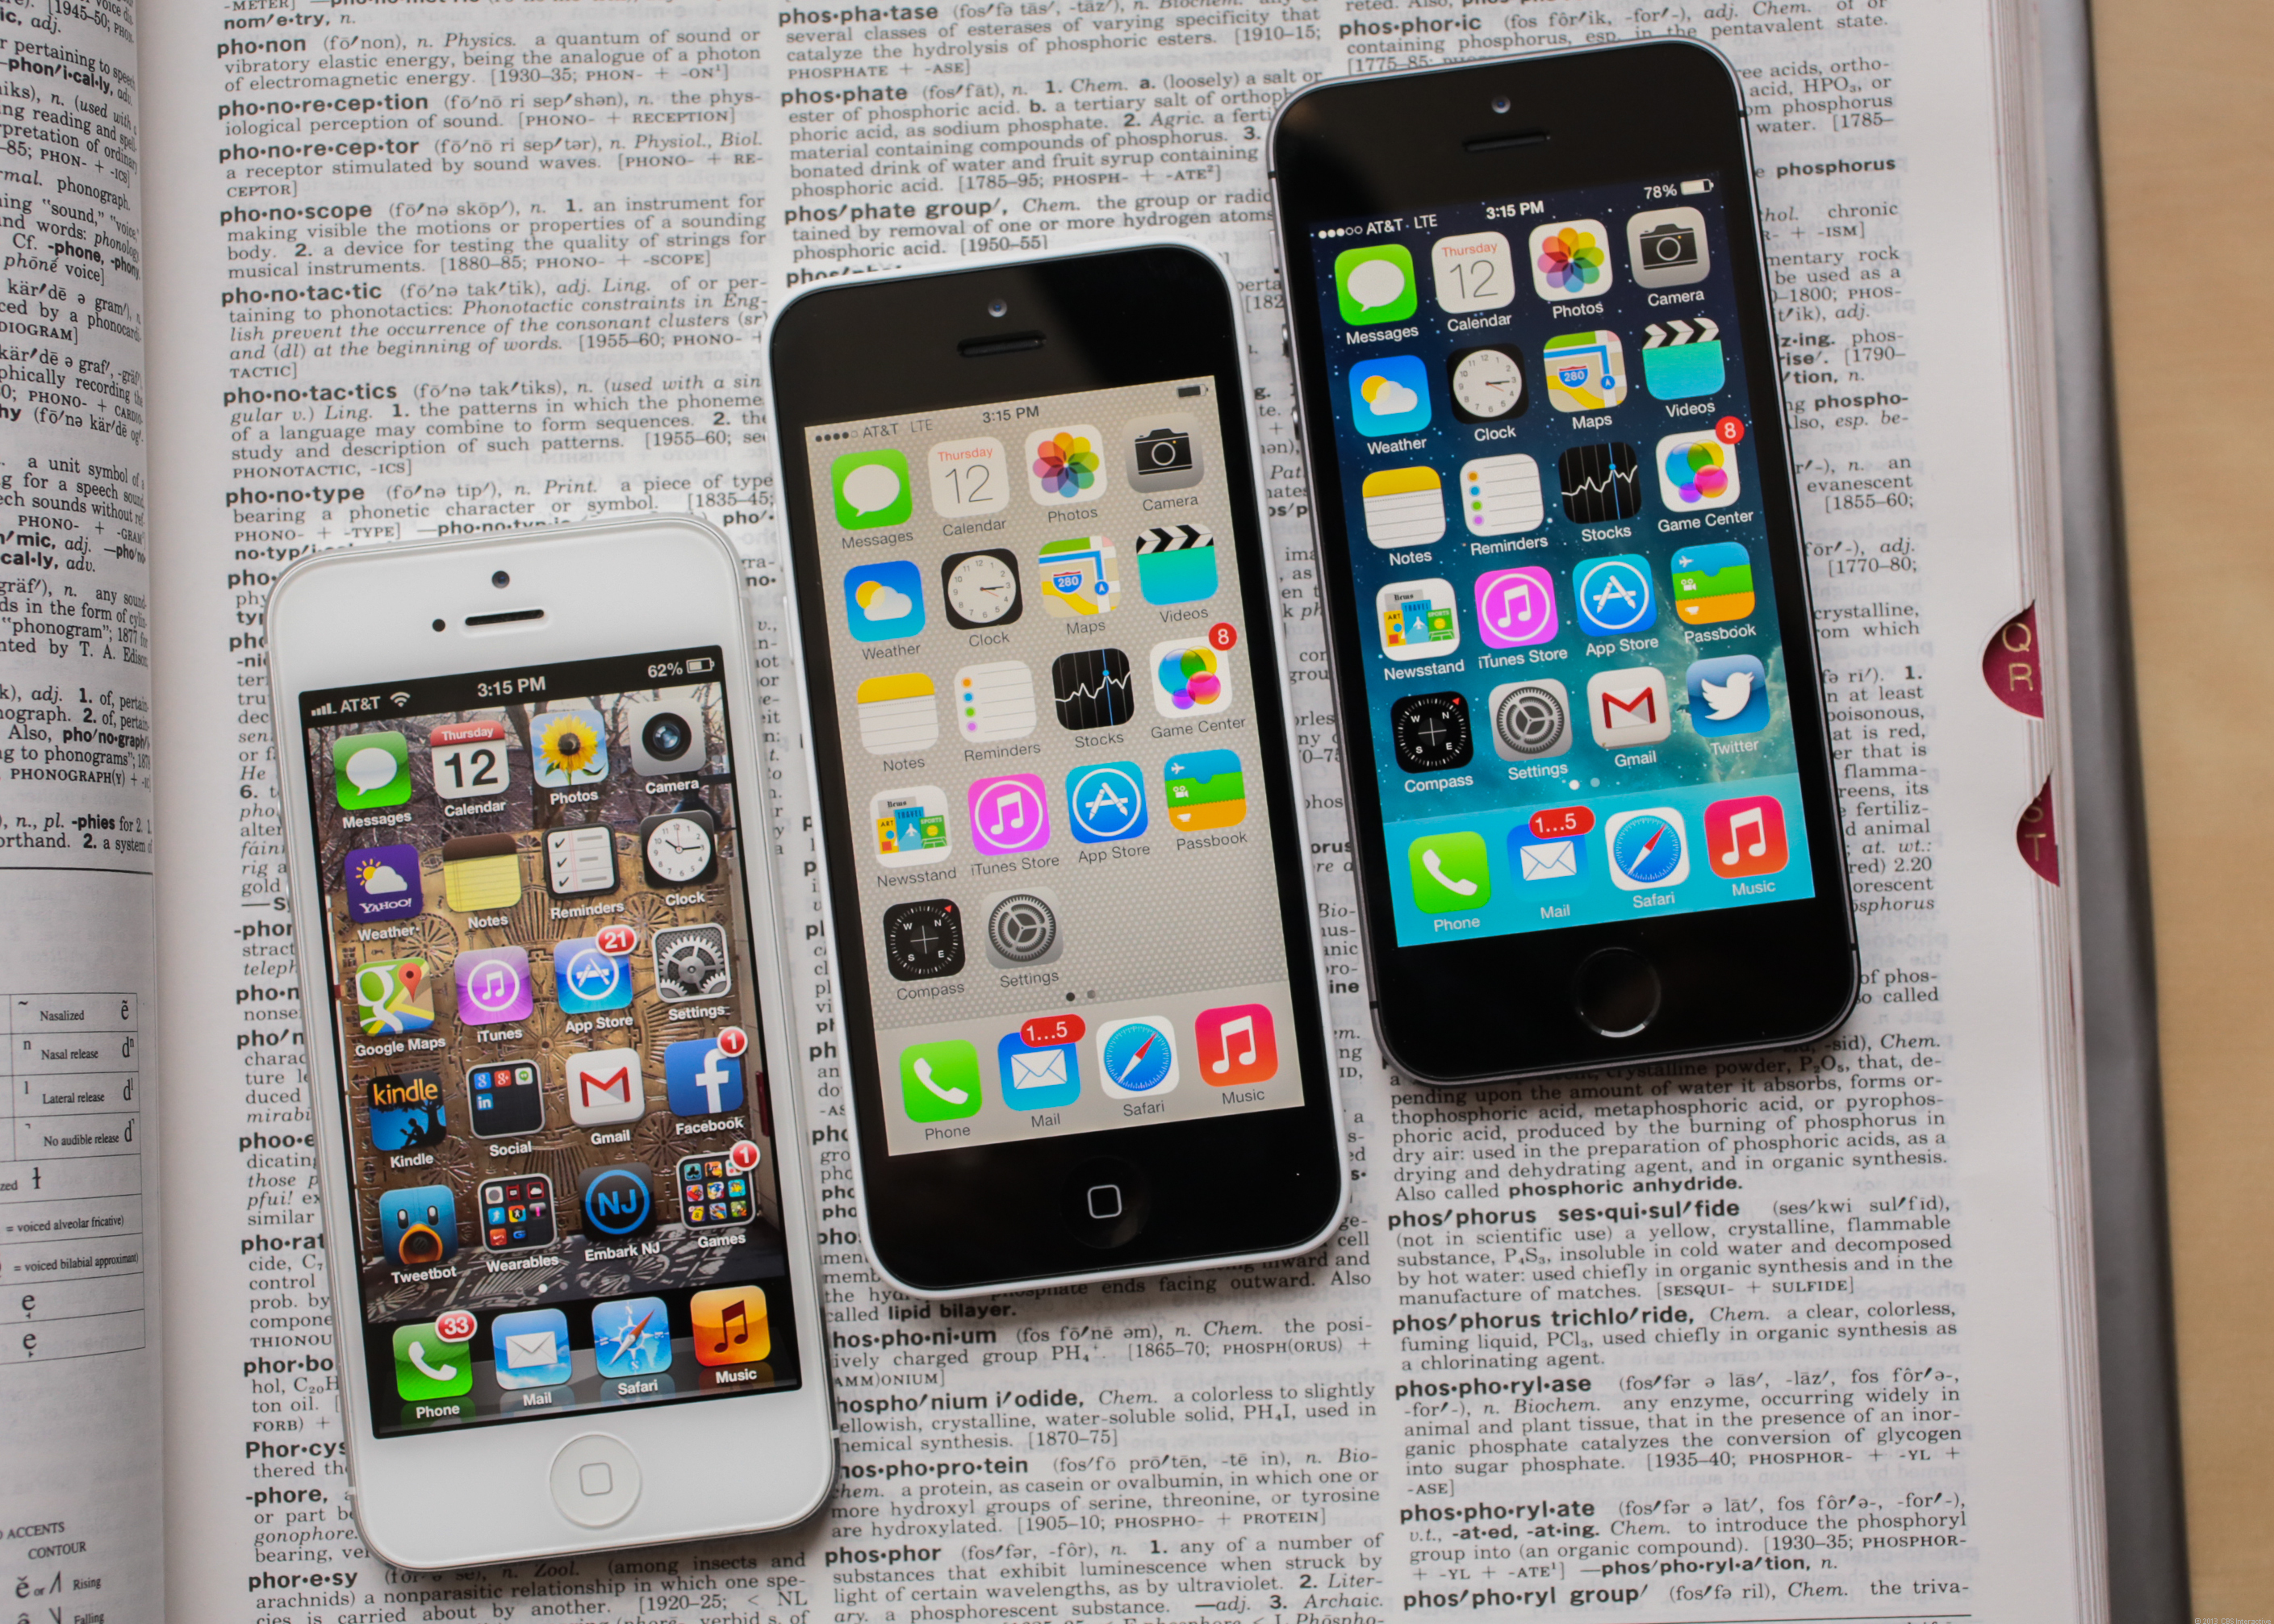 The iPhone 5 family